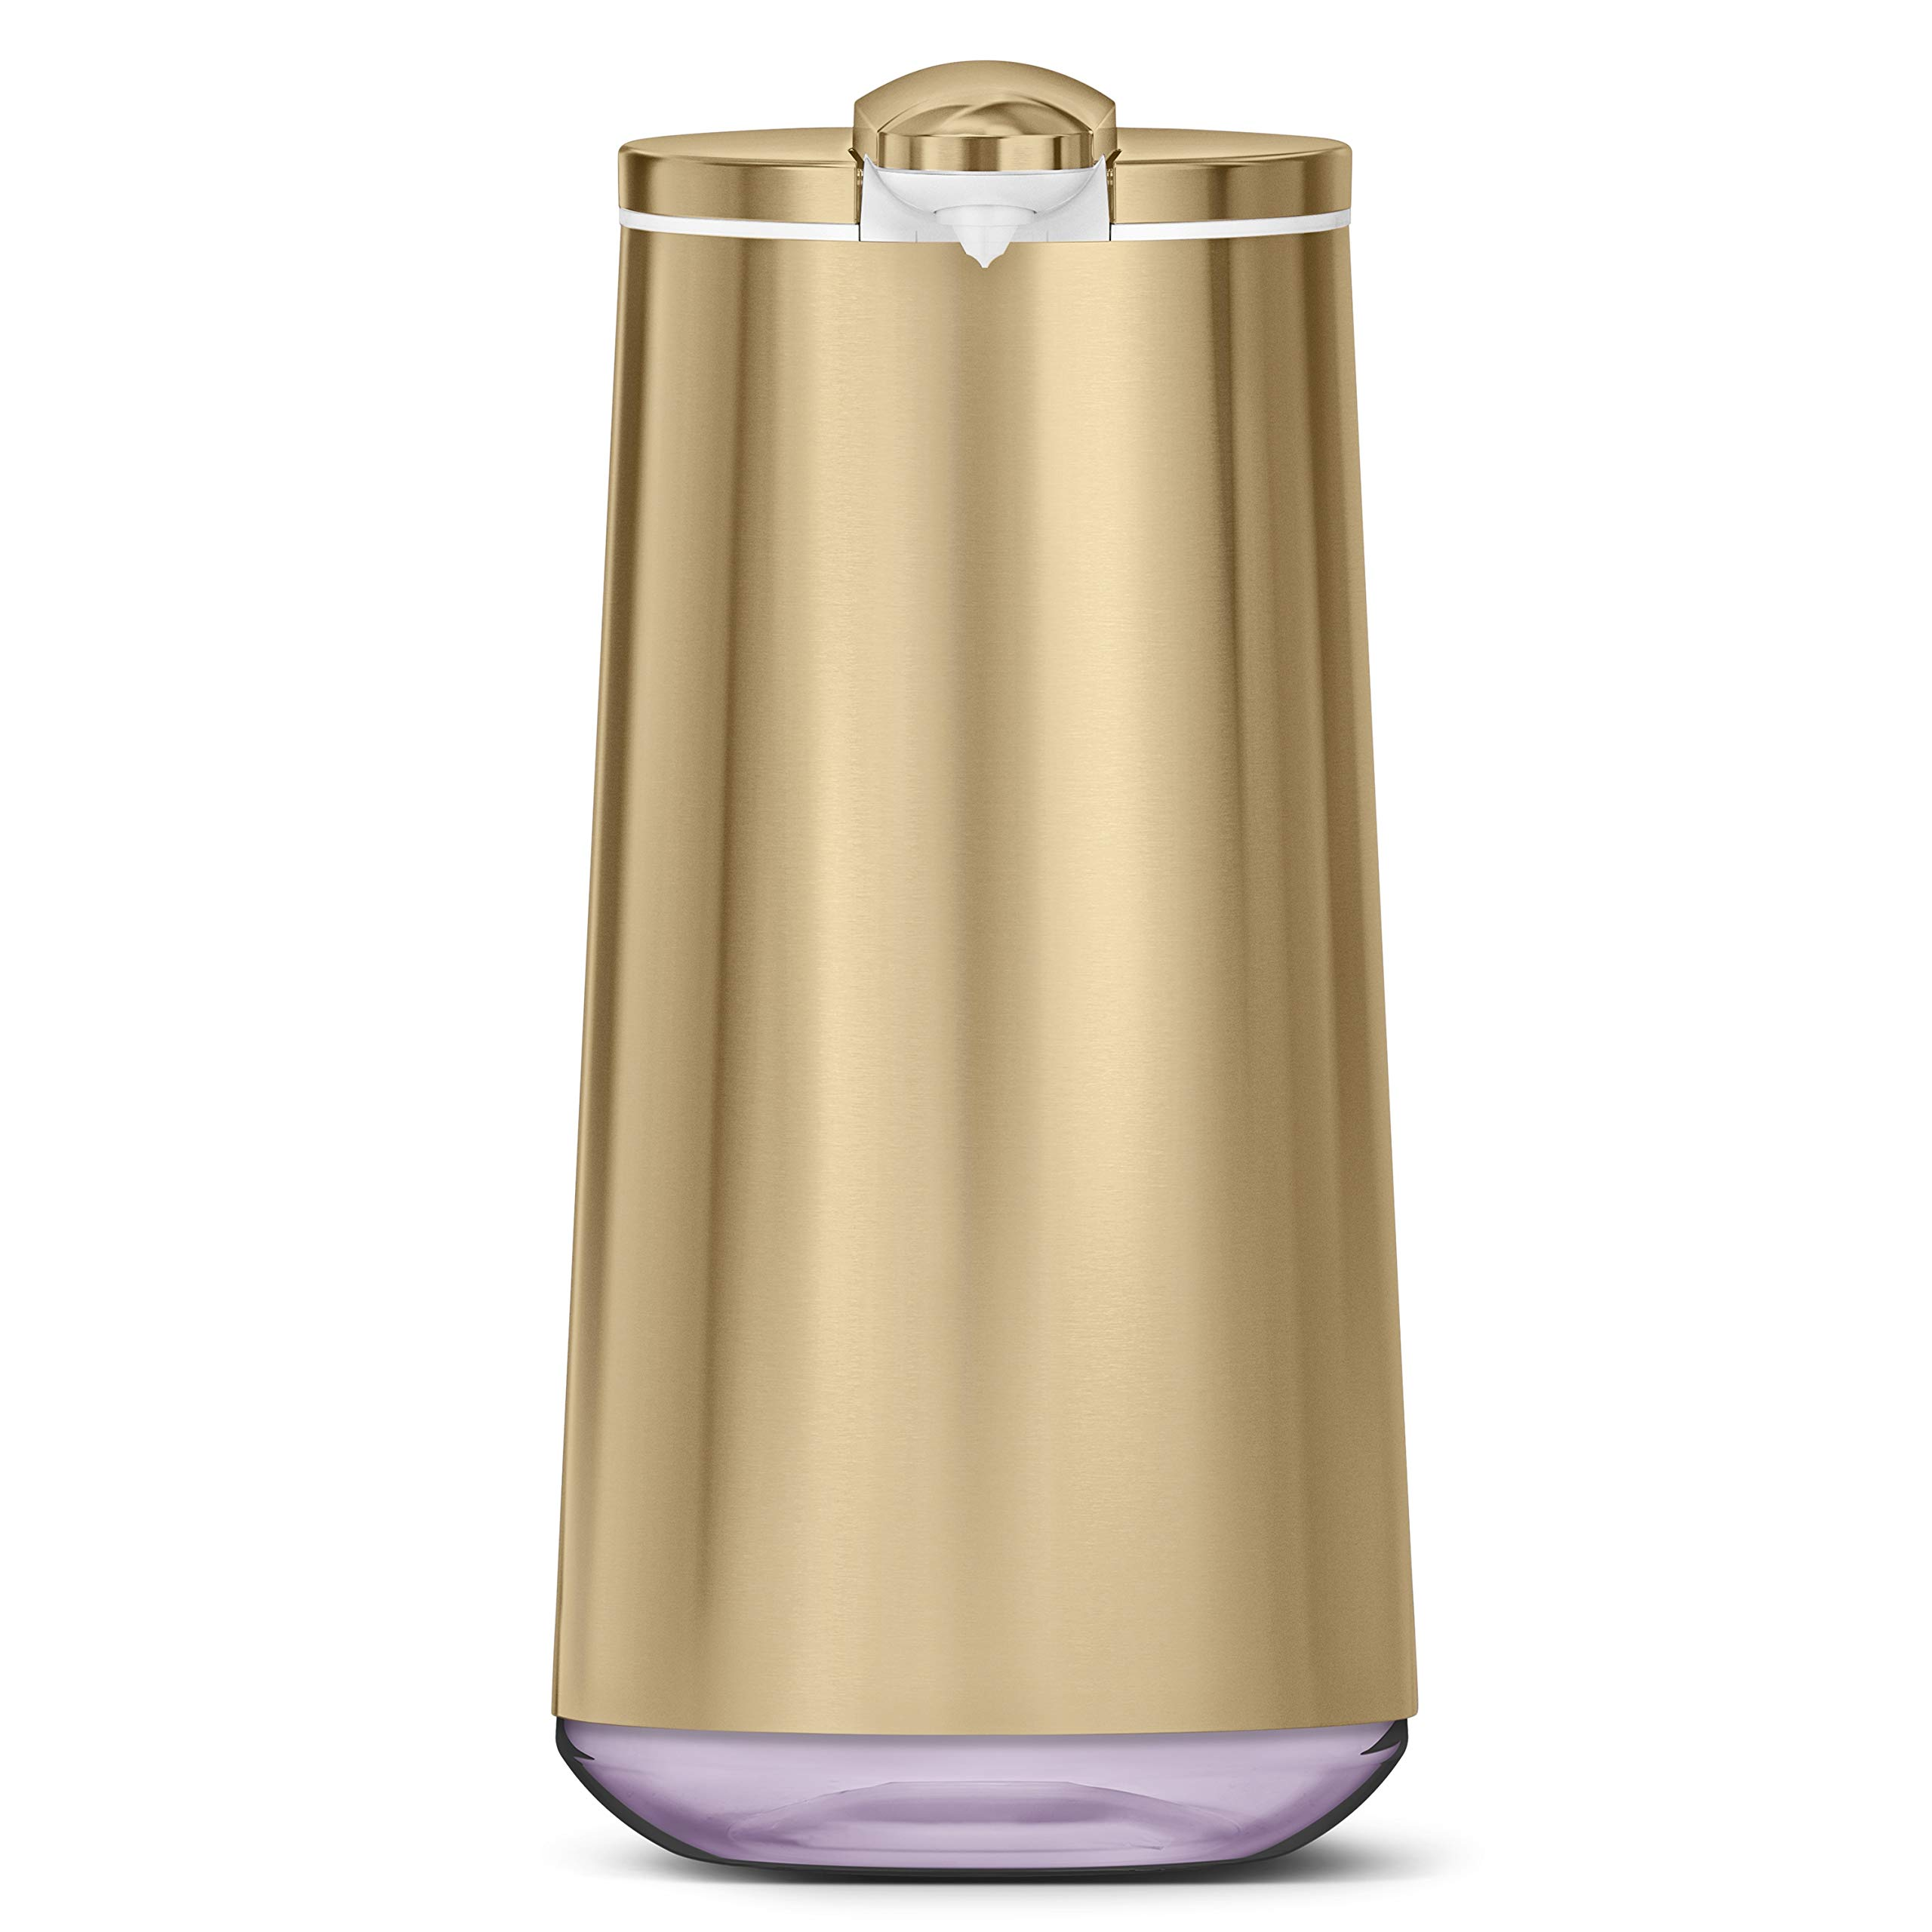 simplehuman Polished Foam Sensor Pump with Lavender Soap Refillable Cartridge, High-Grade Brass Stainless Steel